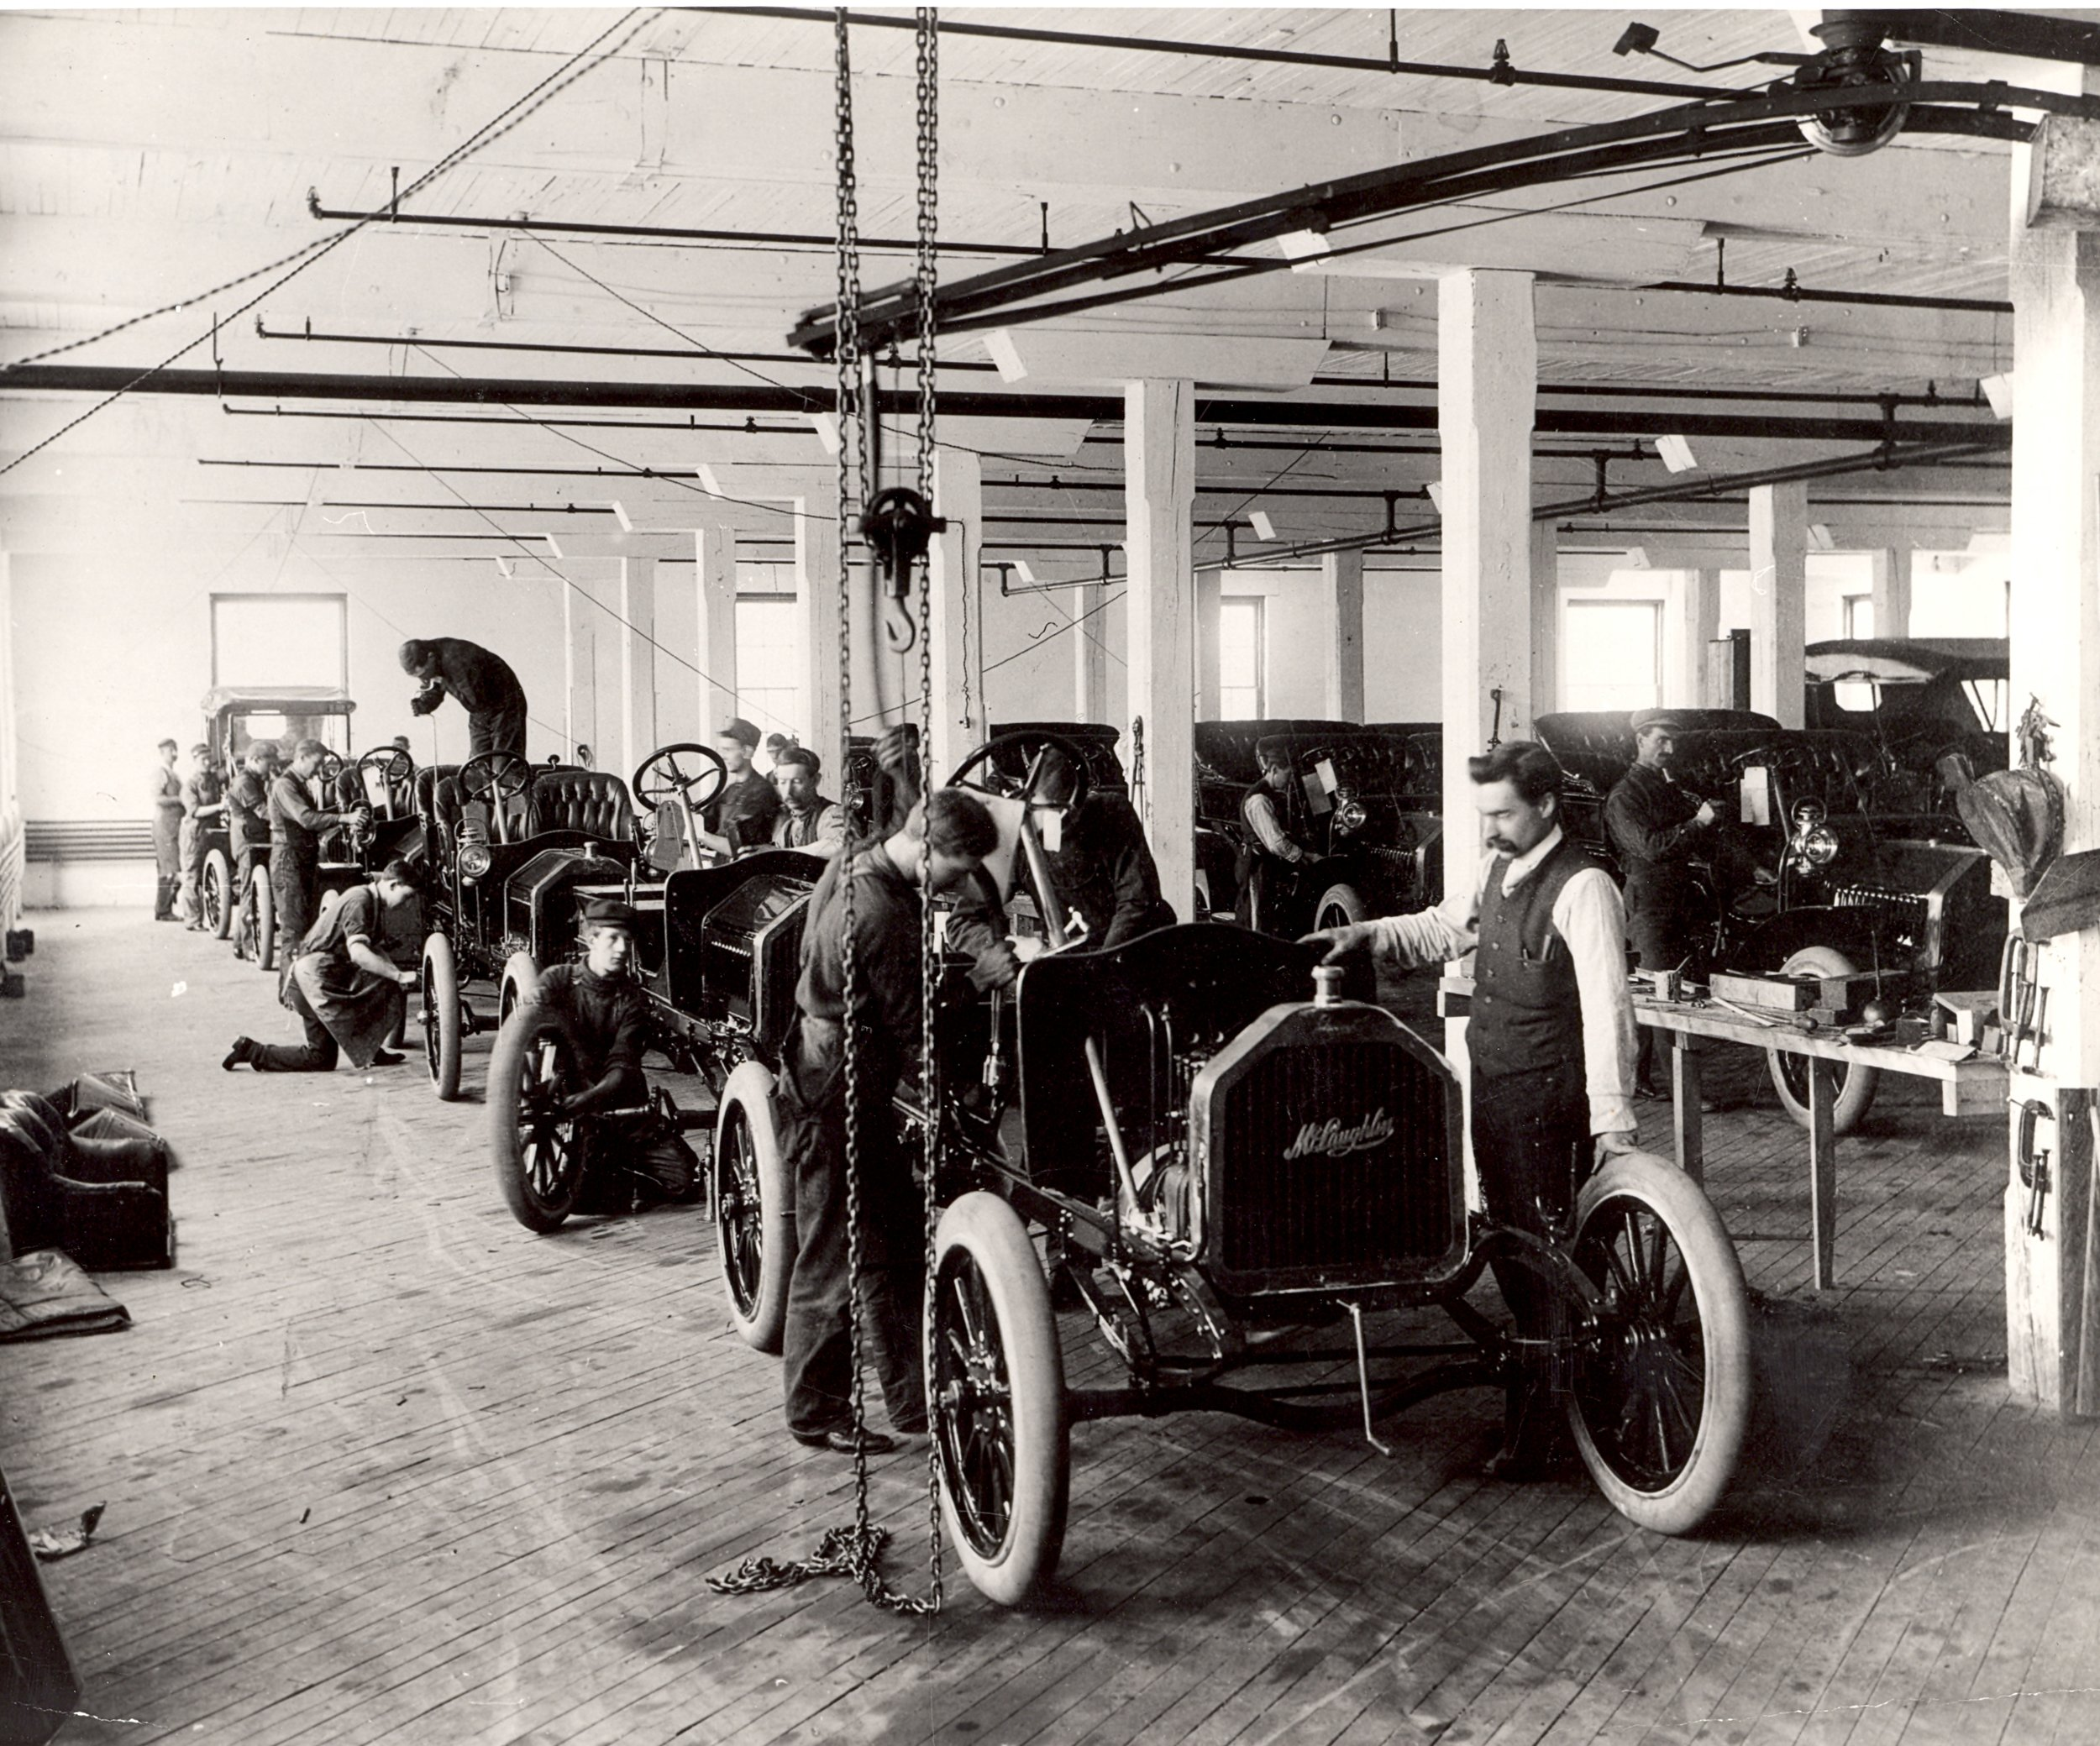 The assembly line at the McLaughlin factory in Oshawa, Ontario, 1908. Thomas Bouckley Collection 0713, Robert McLaughlin Gallery.